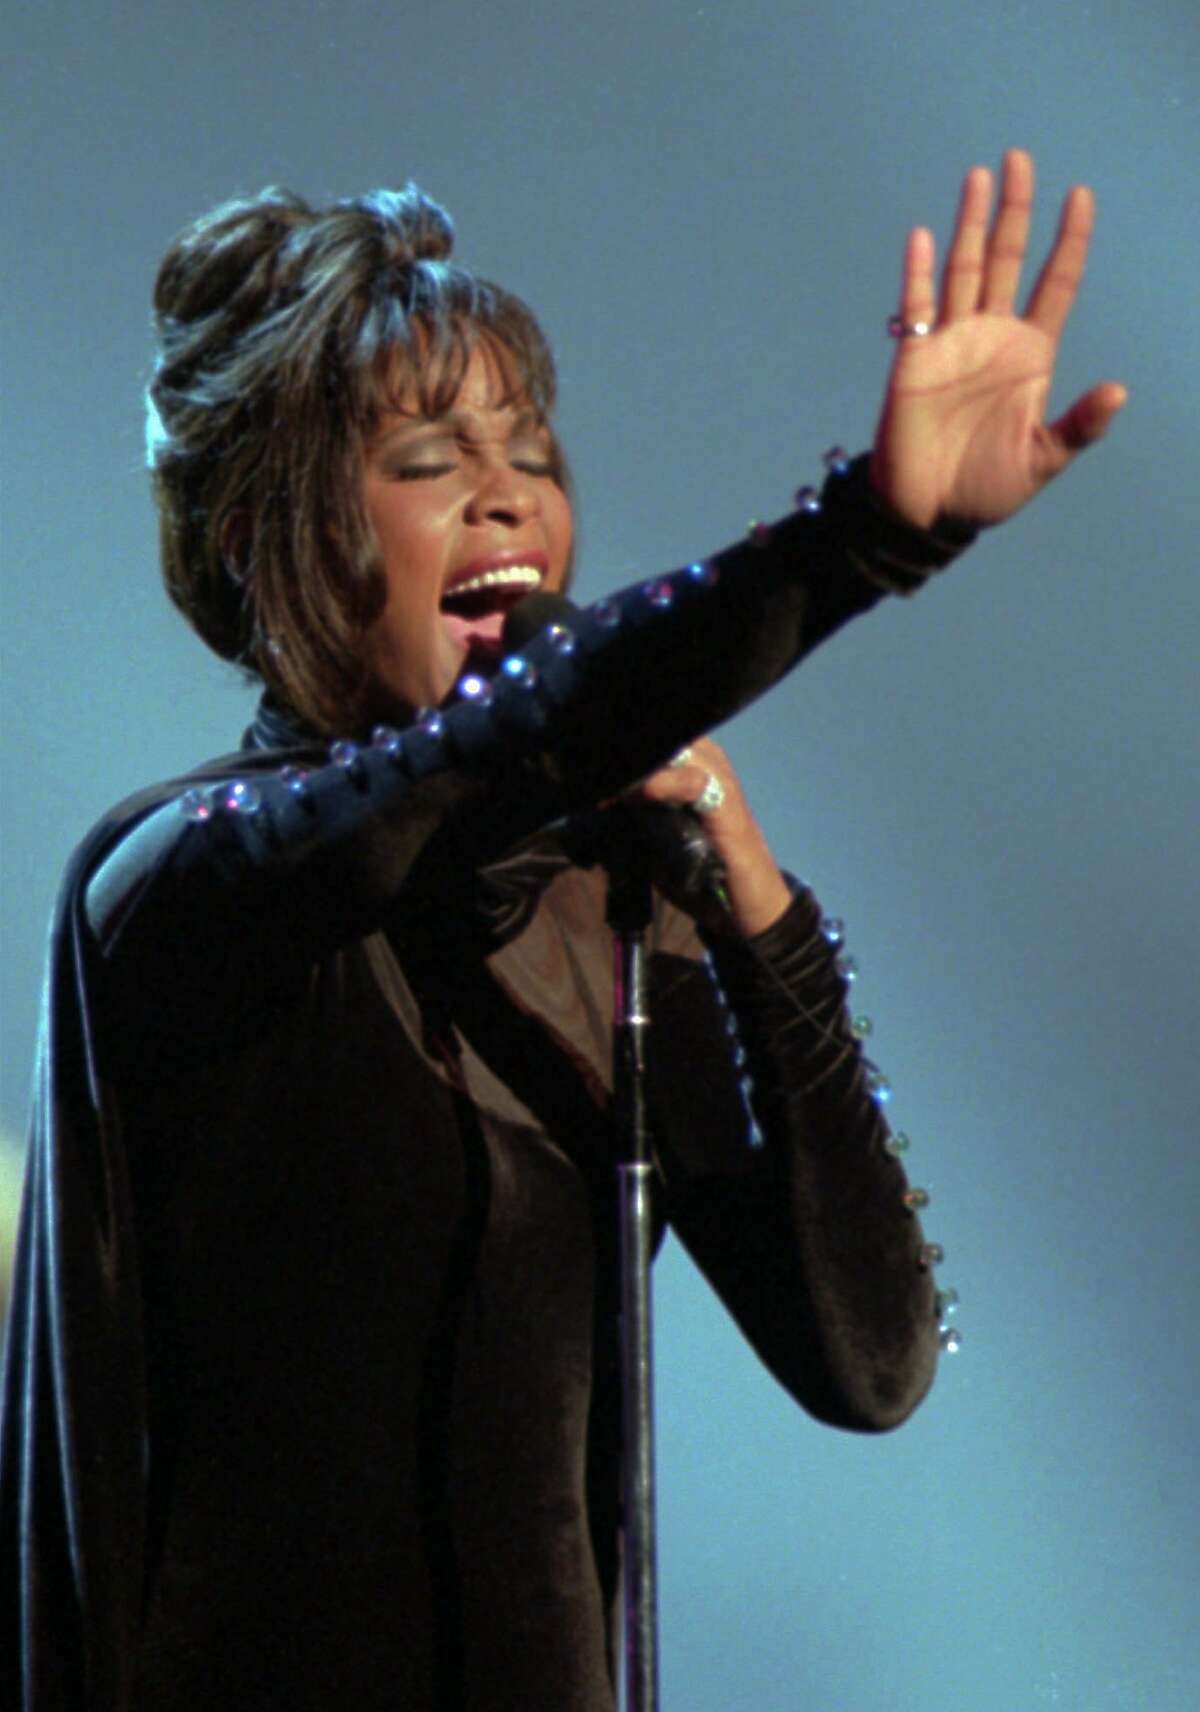 ADVANCE FOR SUN. FEB. 27--FILE- Singer Whitney Houston performs at the American Music Awards in Los Angeles on Feb. 7, 1994. Houston has been nominated for four Grammy awards, including album-of-the-year for